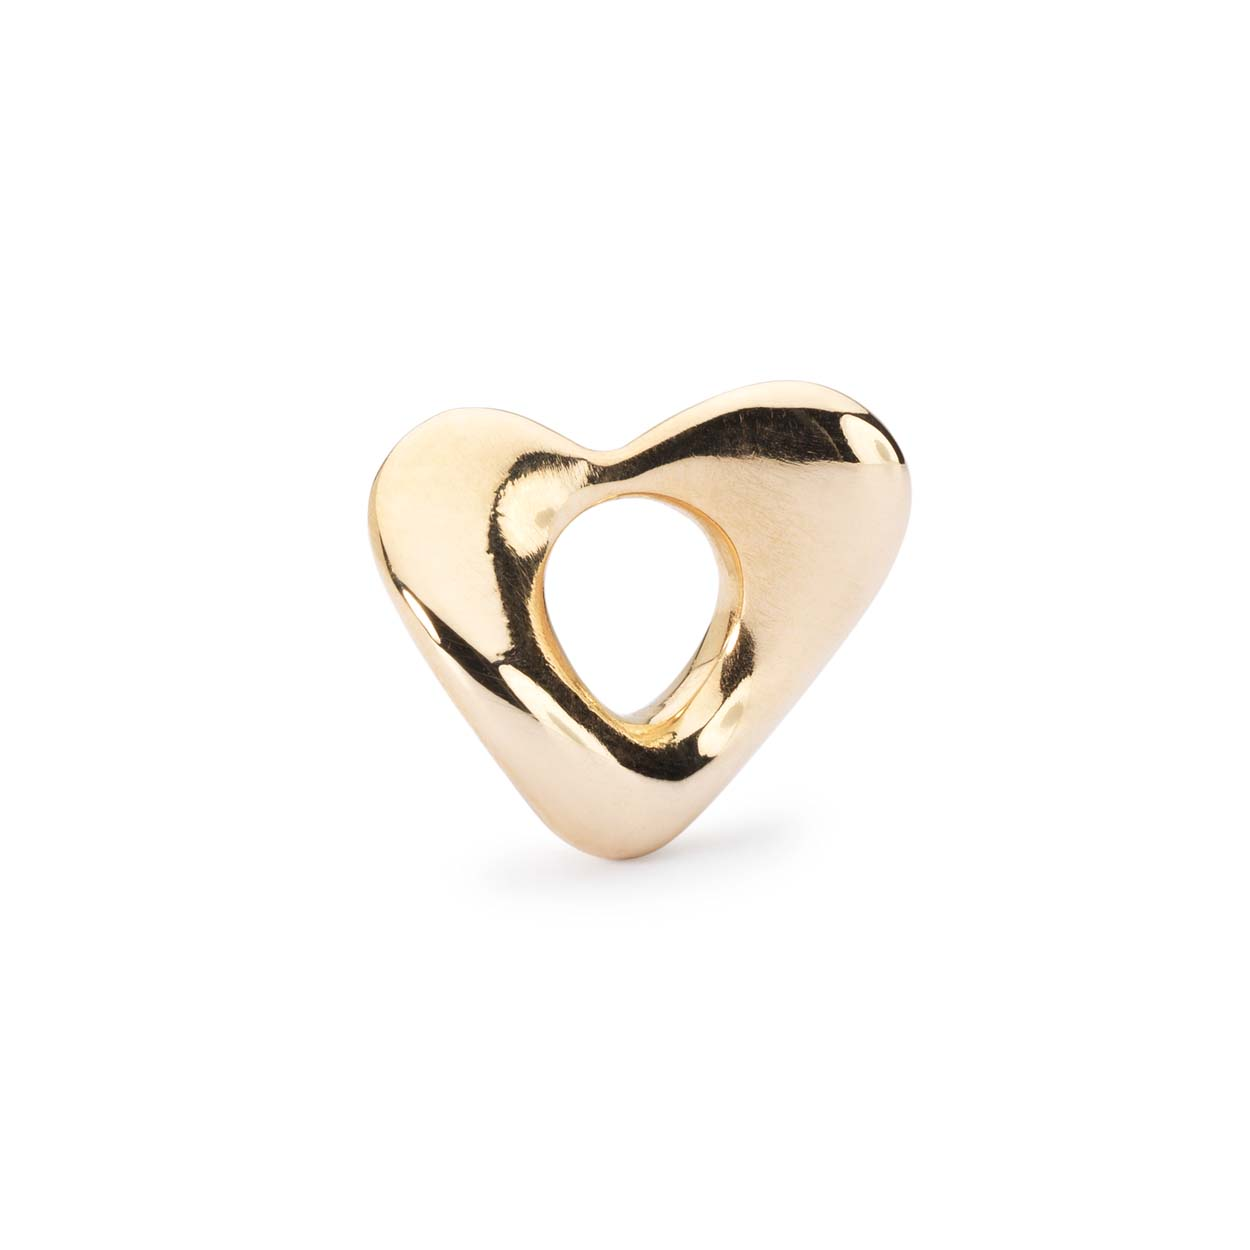 TAUBE-00105 Soft Heart small gold a